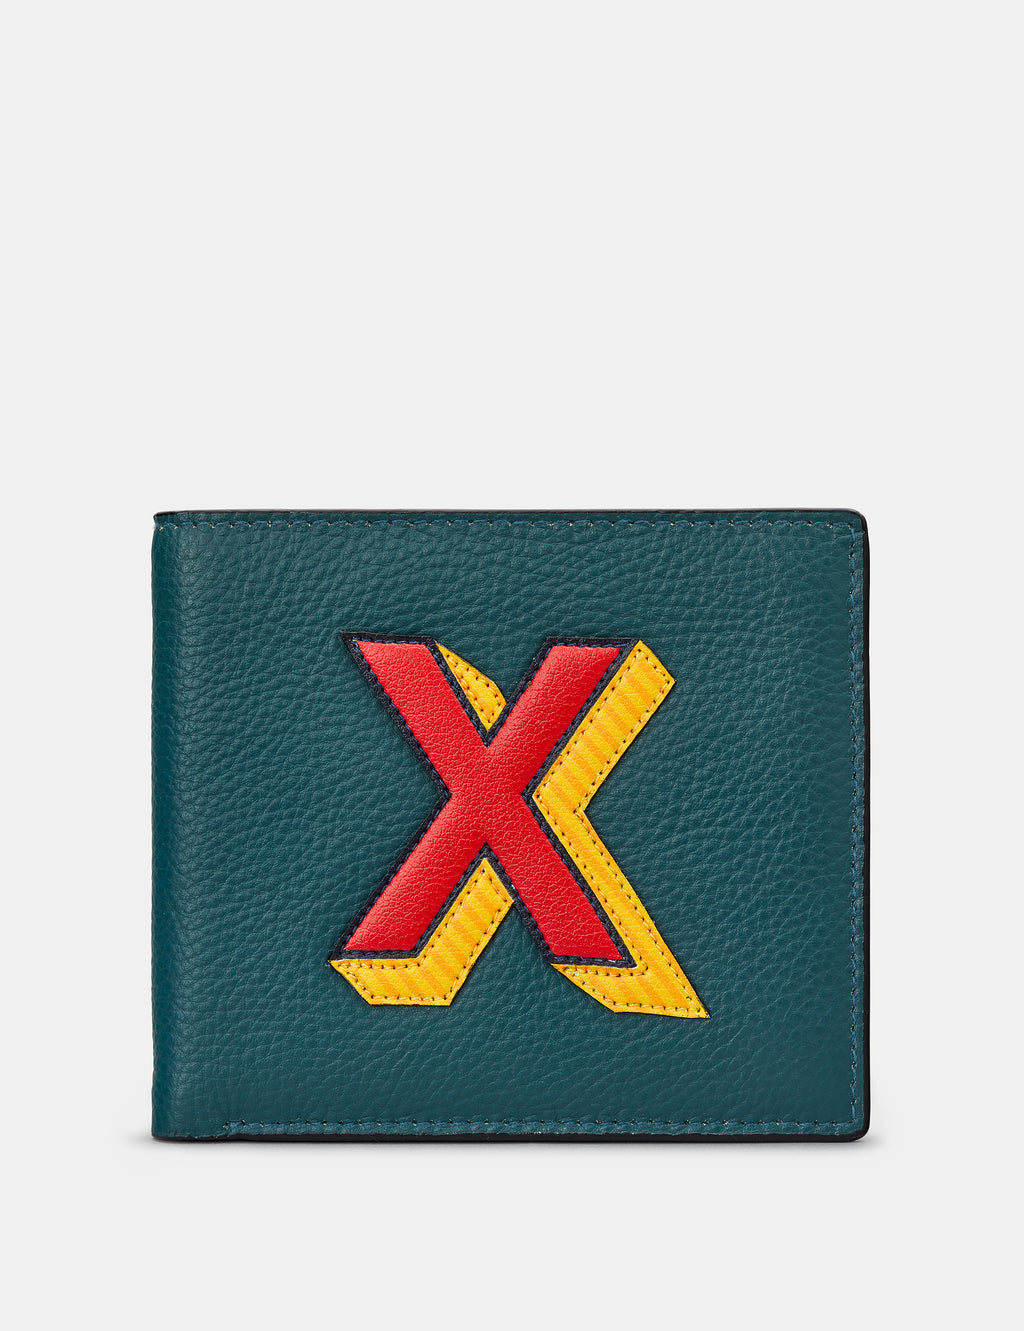 X Initial Teal Leather Wallet